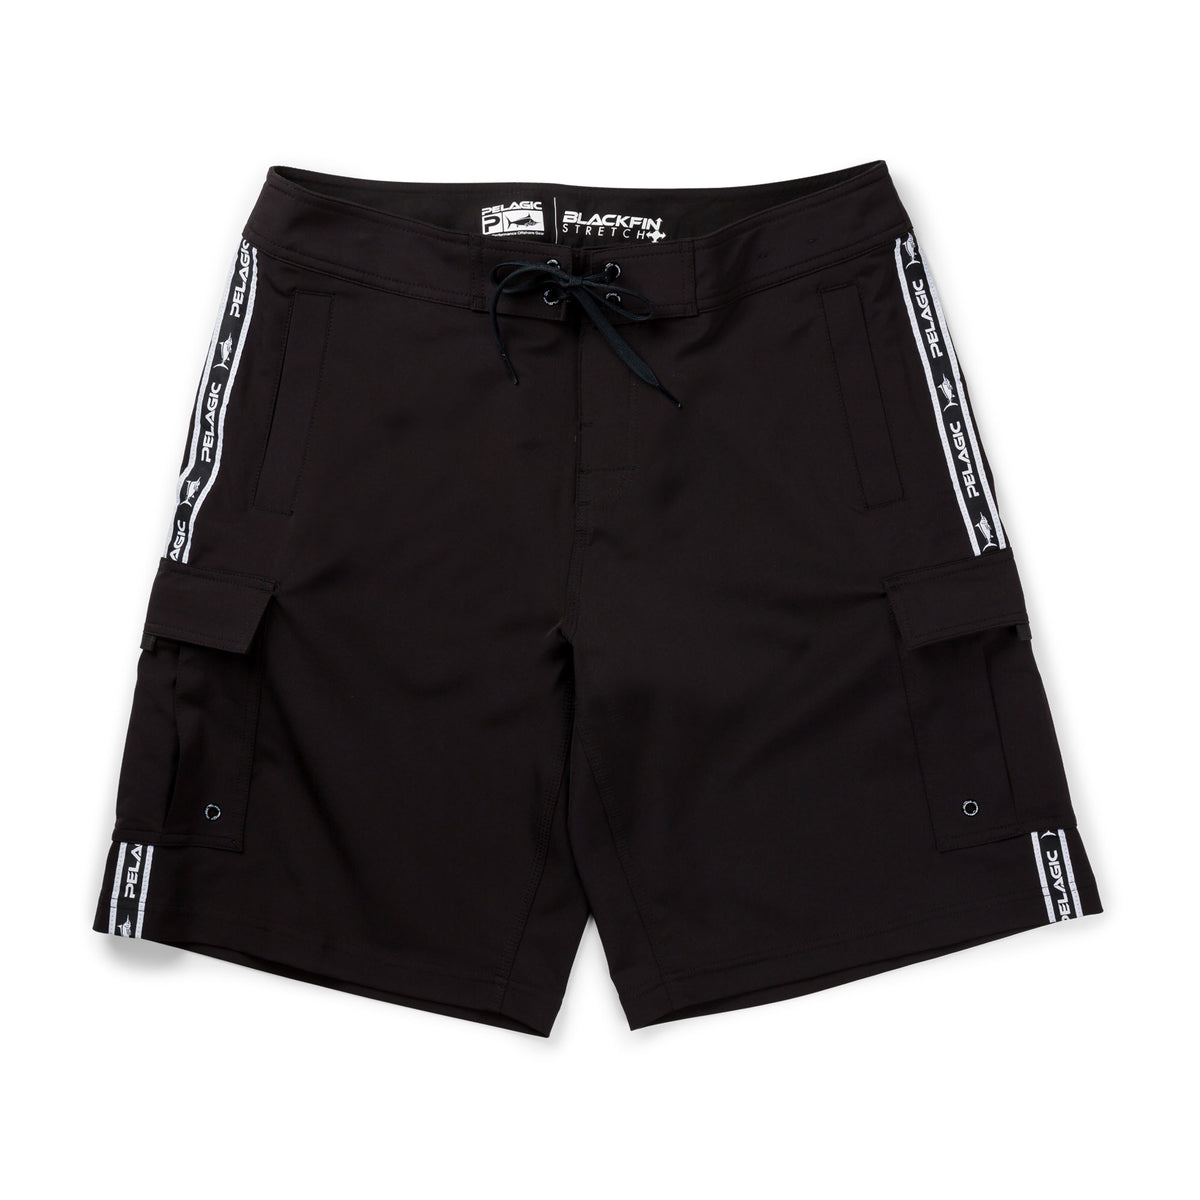 Blackfin Stretch Fishing Shorts Big Image - 1